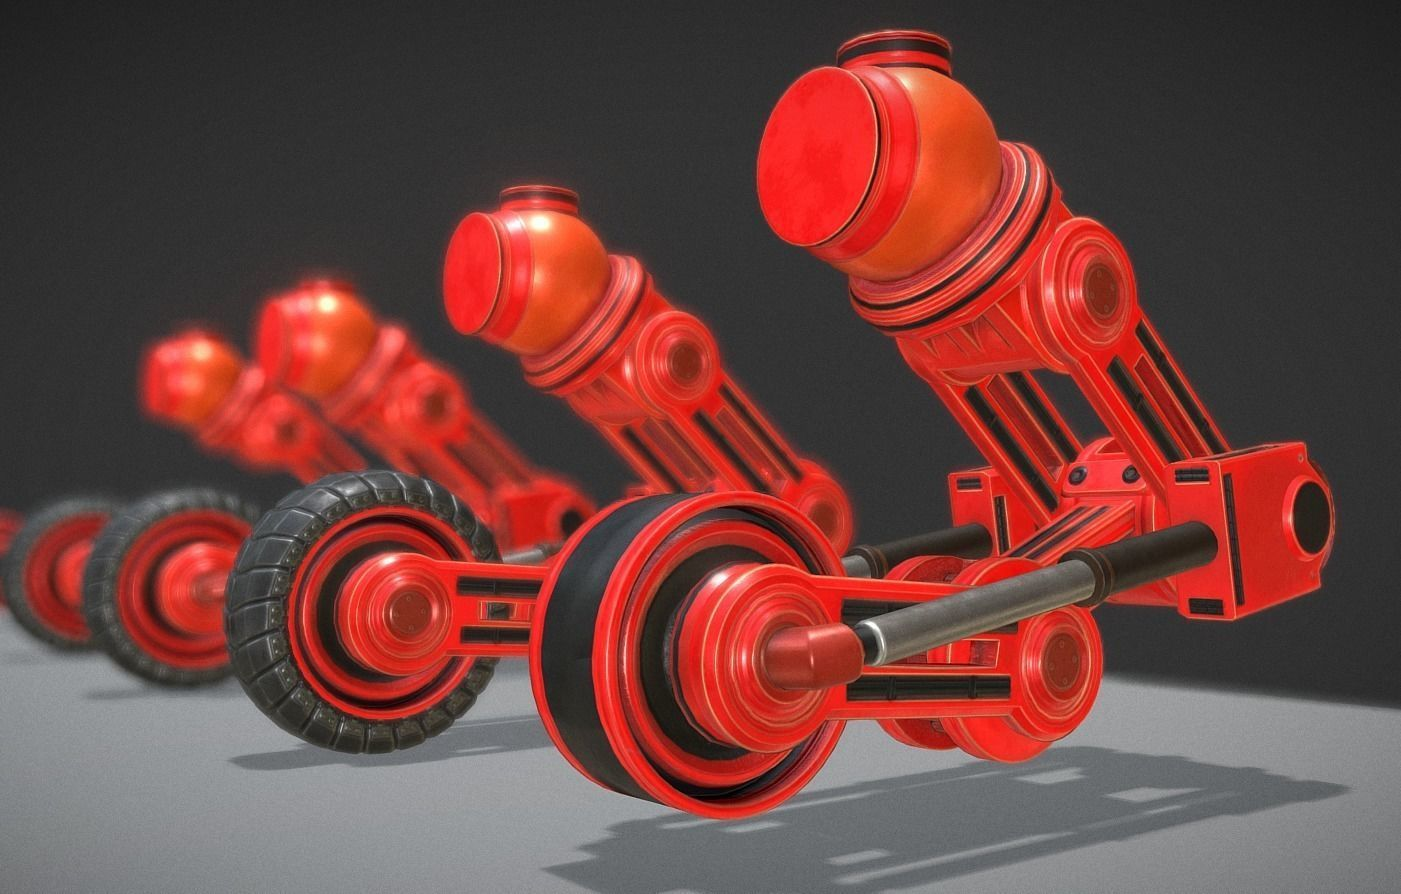 Suspension Design Neon 3d Model Hydraulic Suspension With Tires Neon Red Version